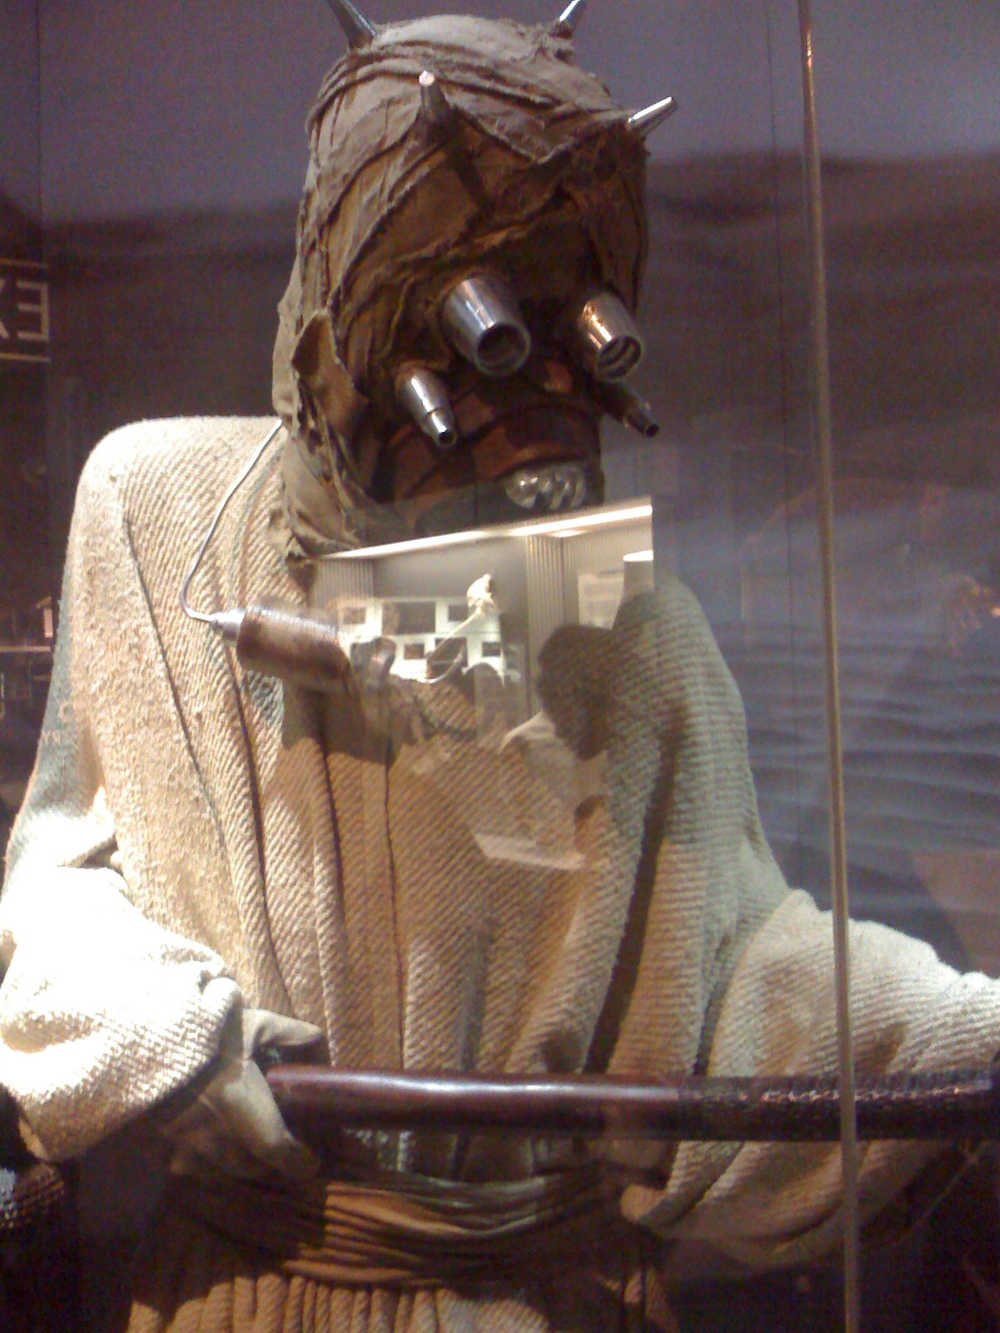 Star Wars Exhibit 7.JPG